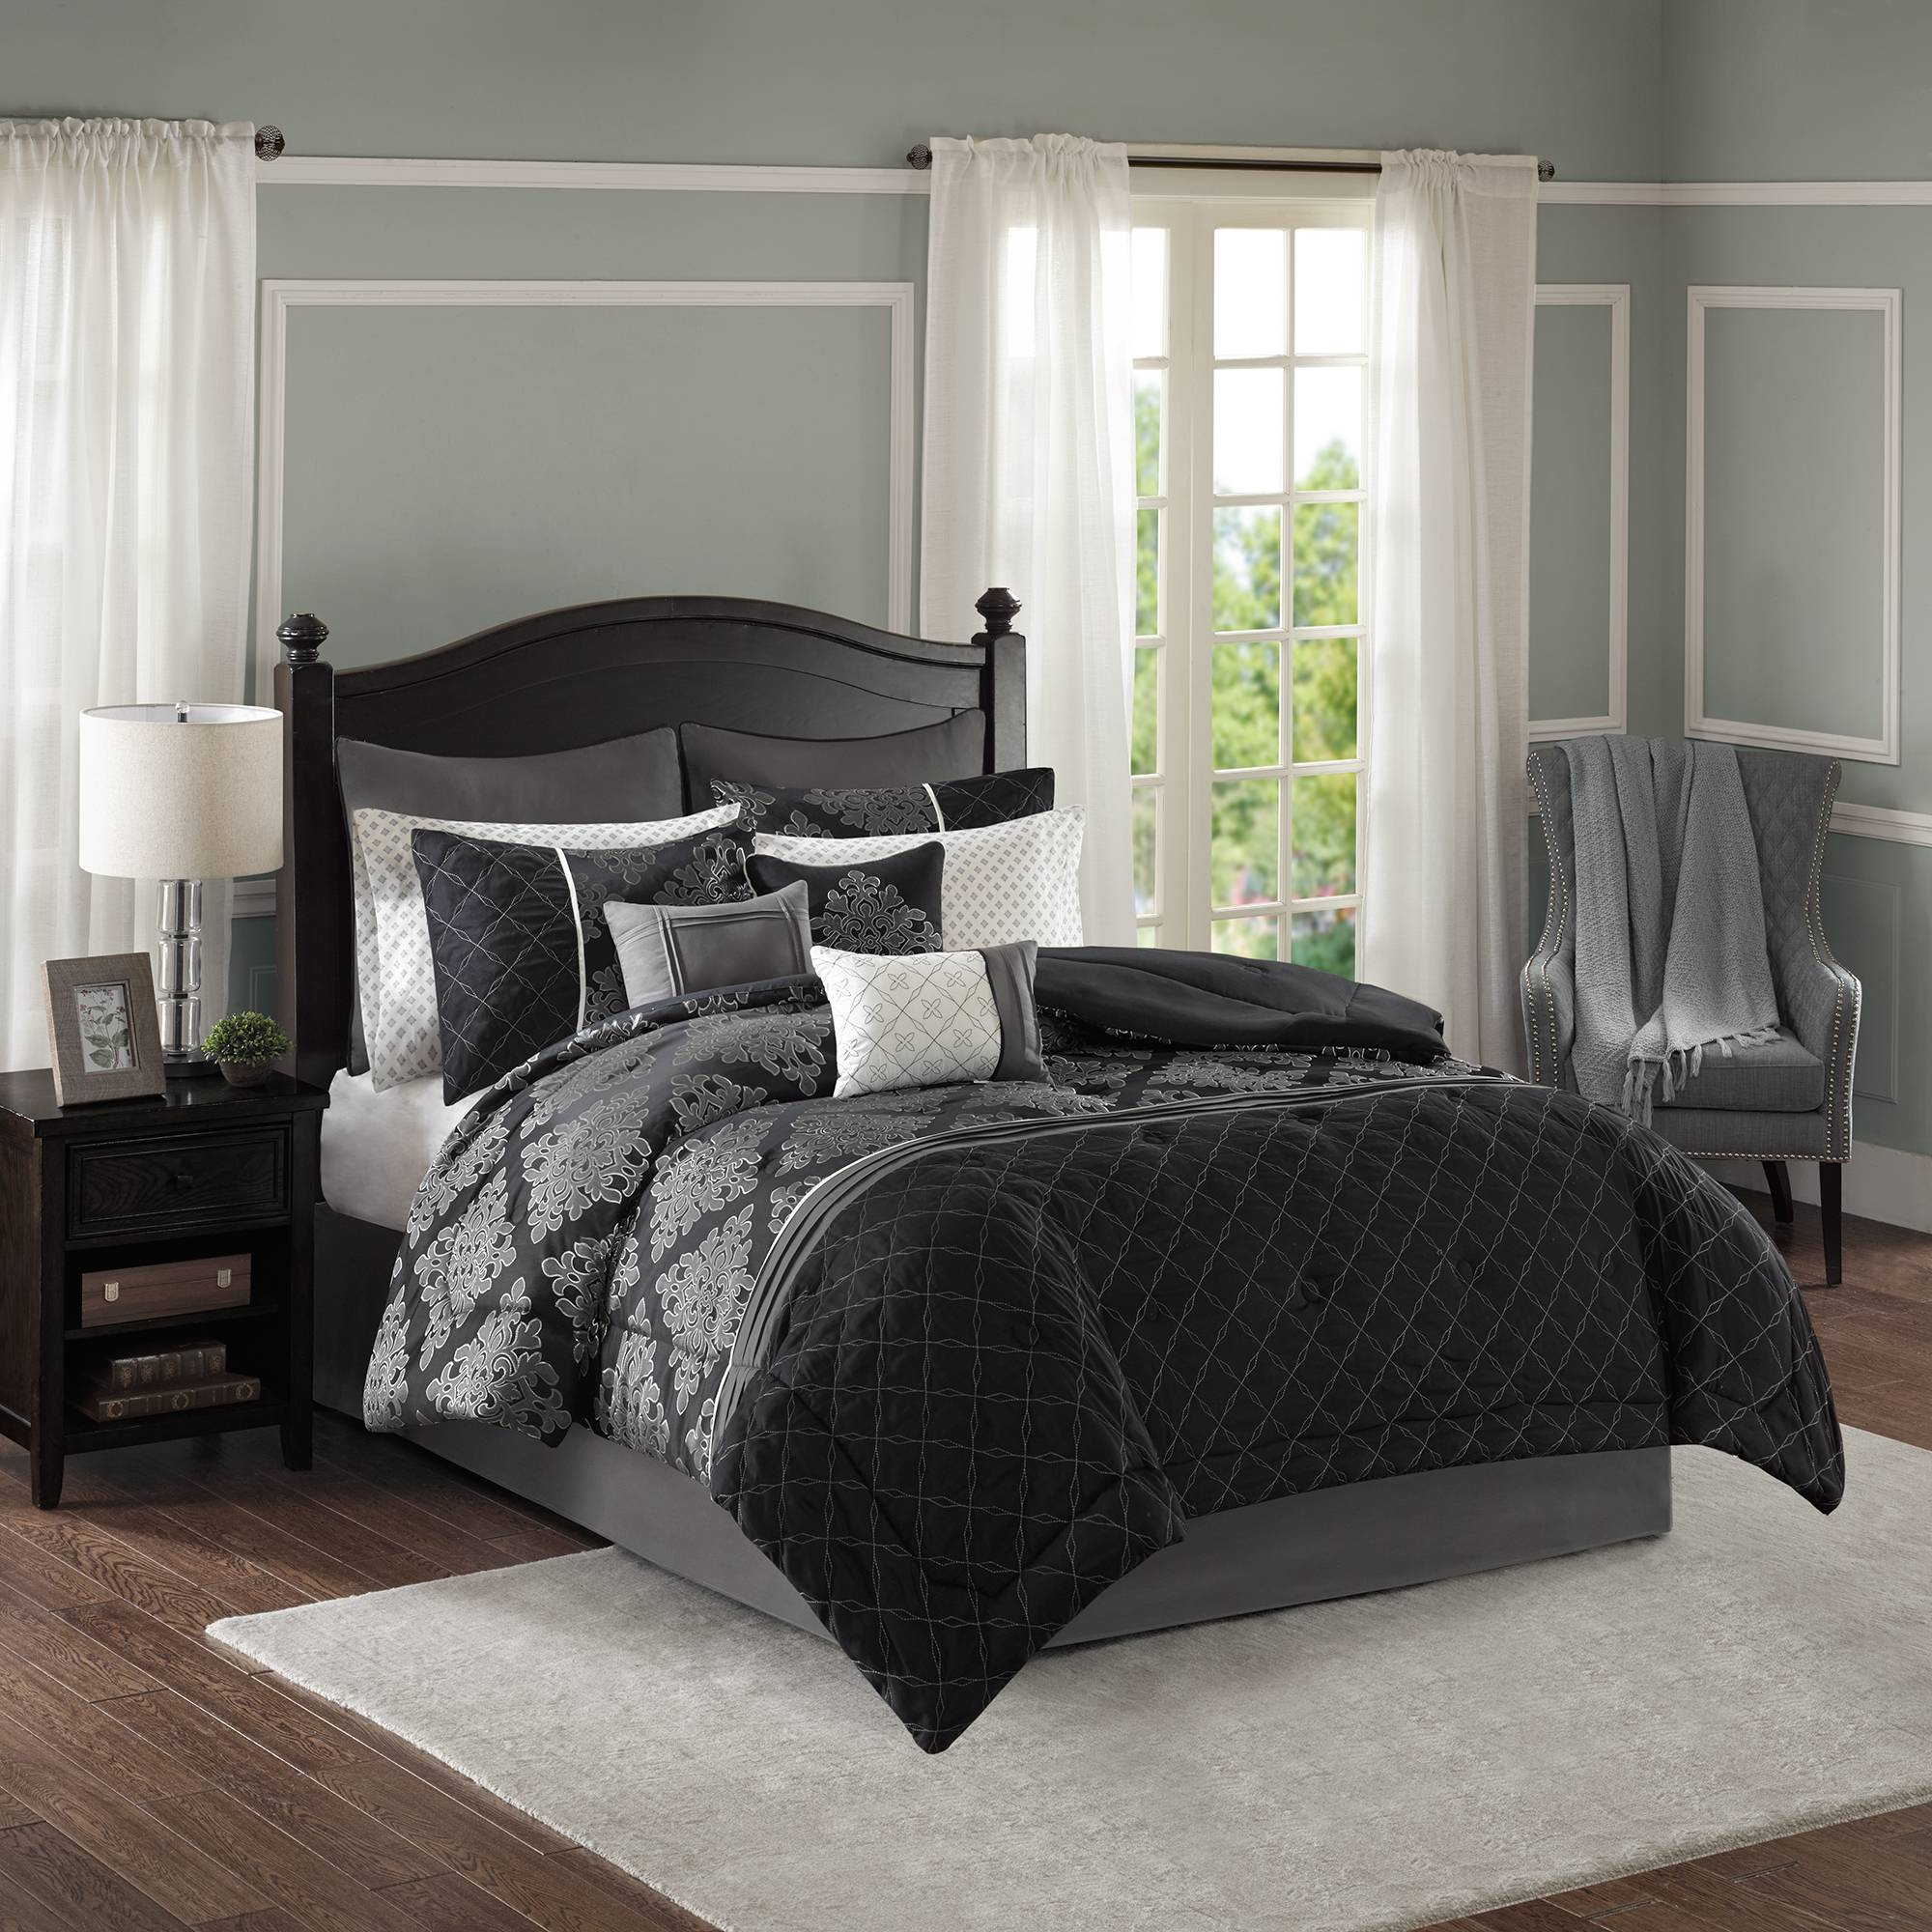 Better Homes and Gardens 11 Piece Jacquard Comforter Set